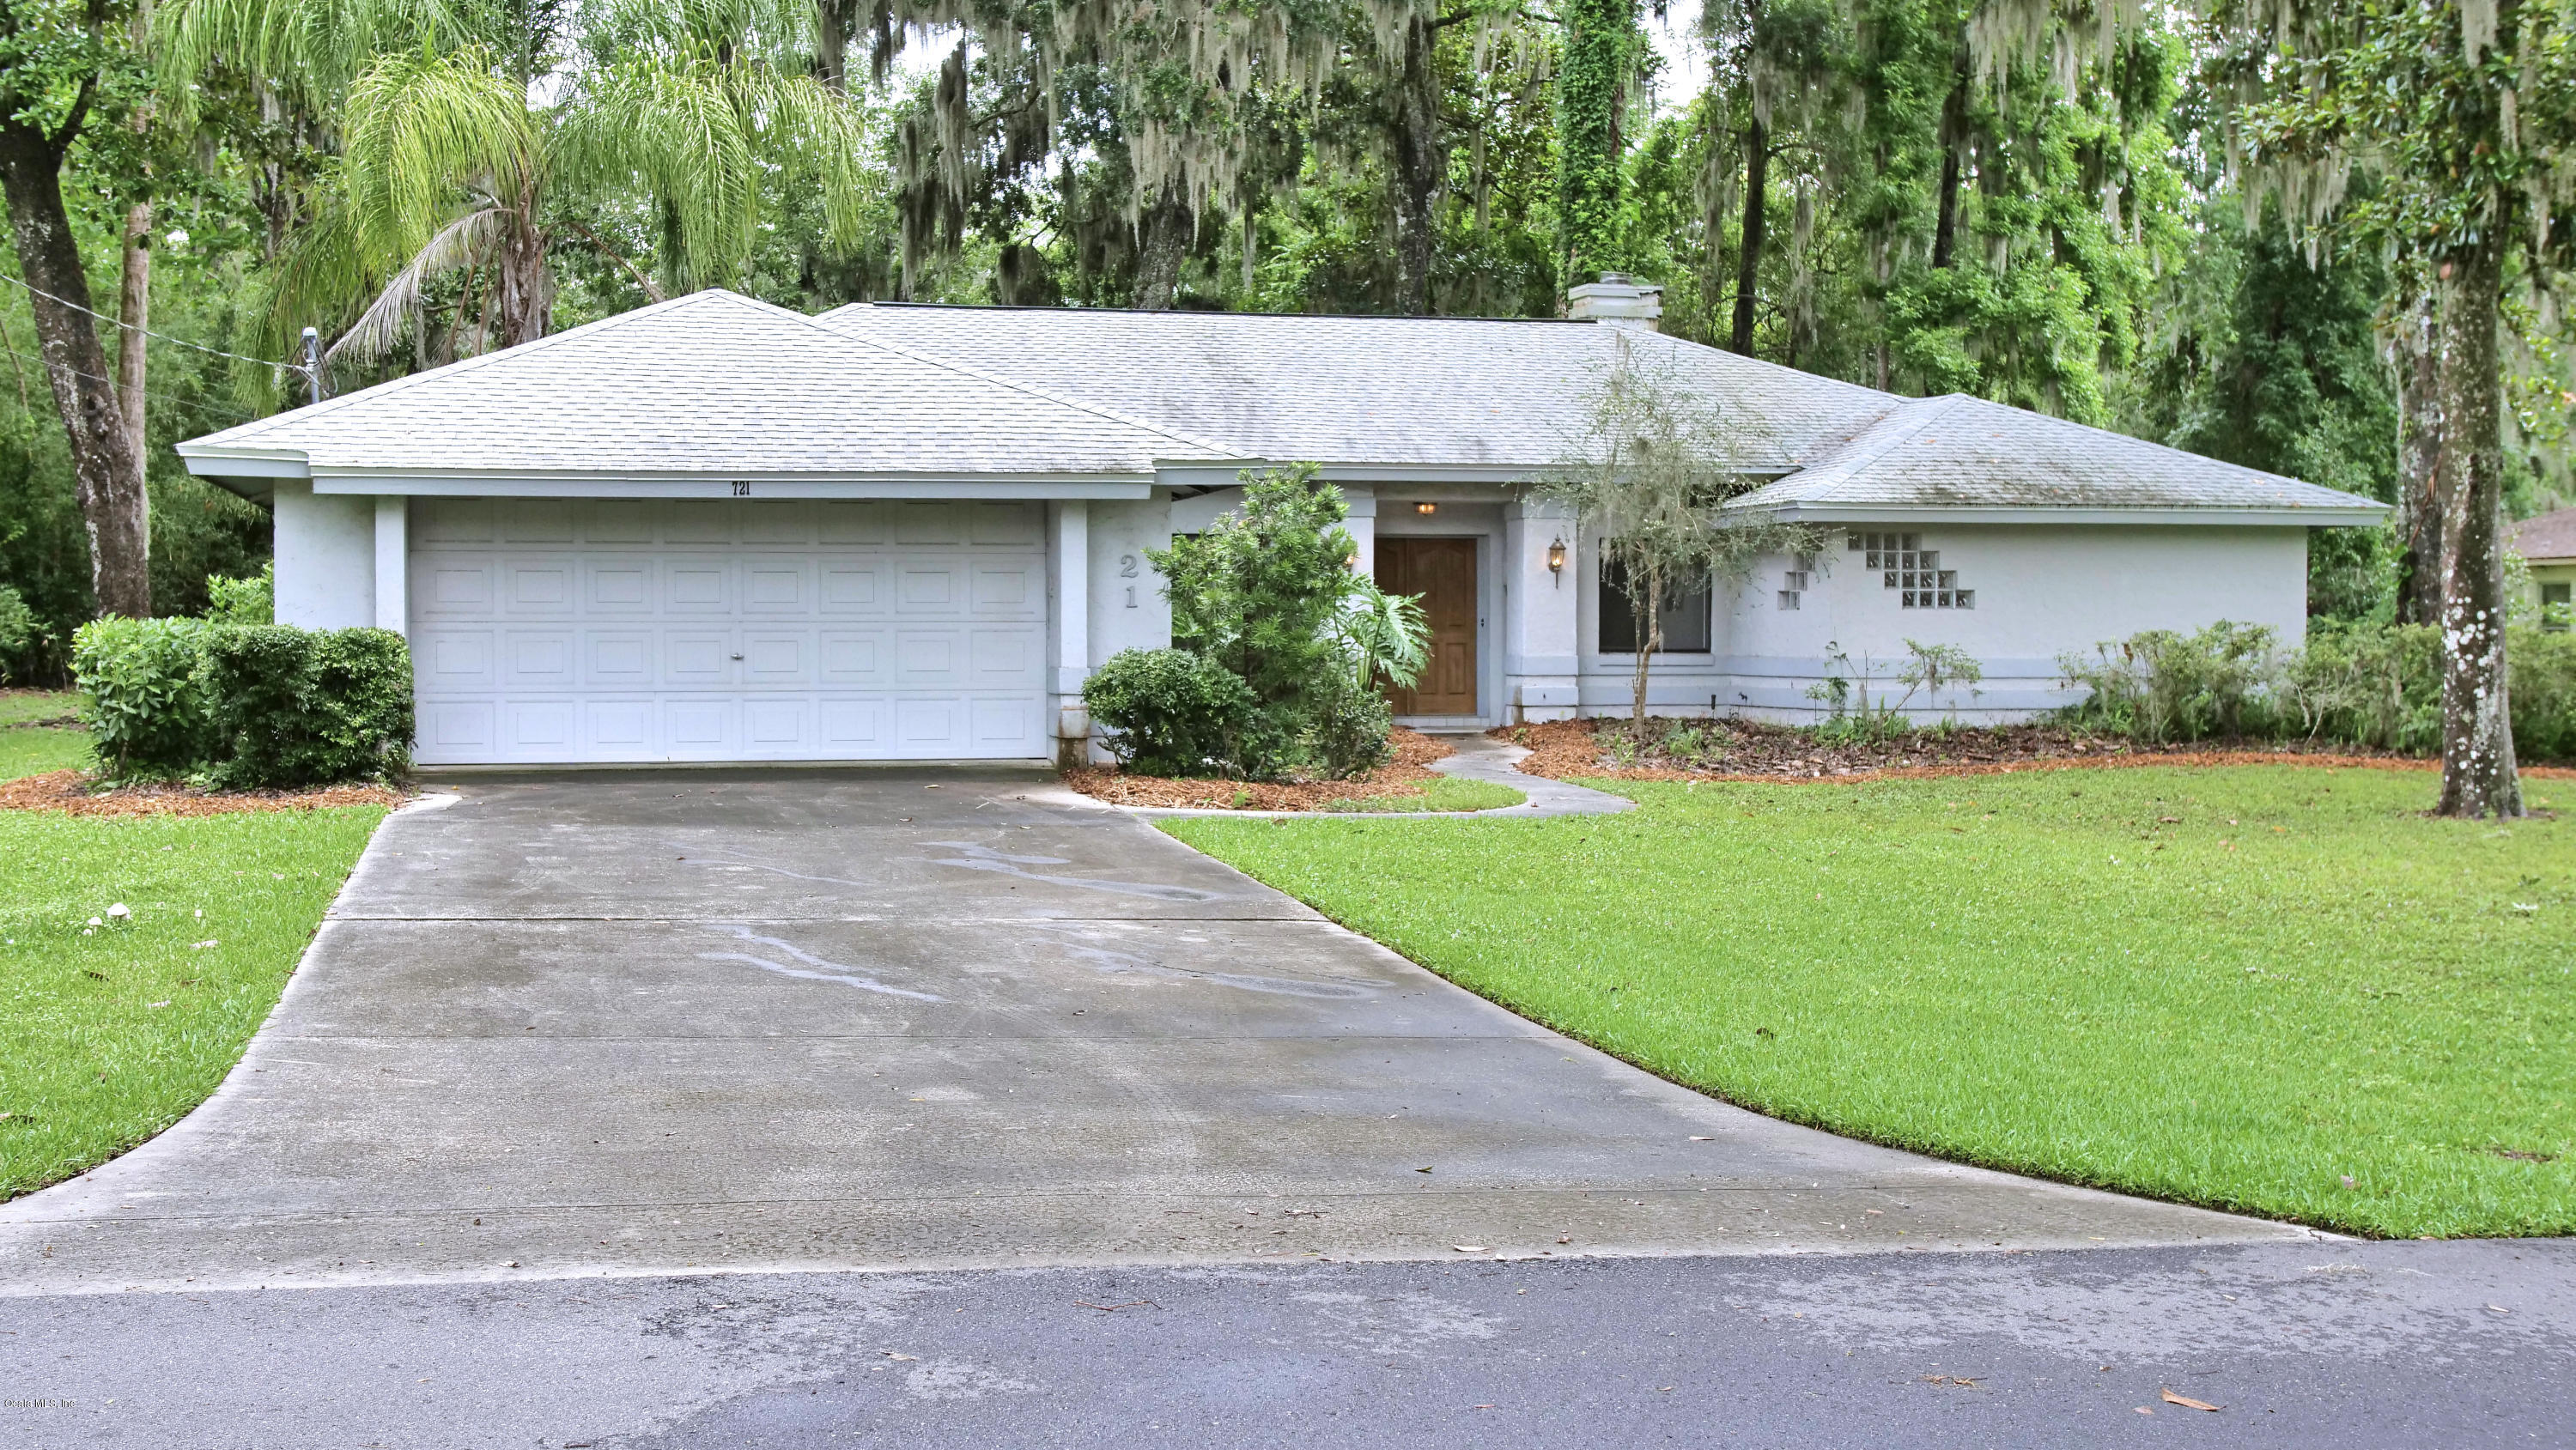 721 SE 15TH AVENUE, OCALA, FL 34471